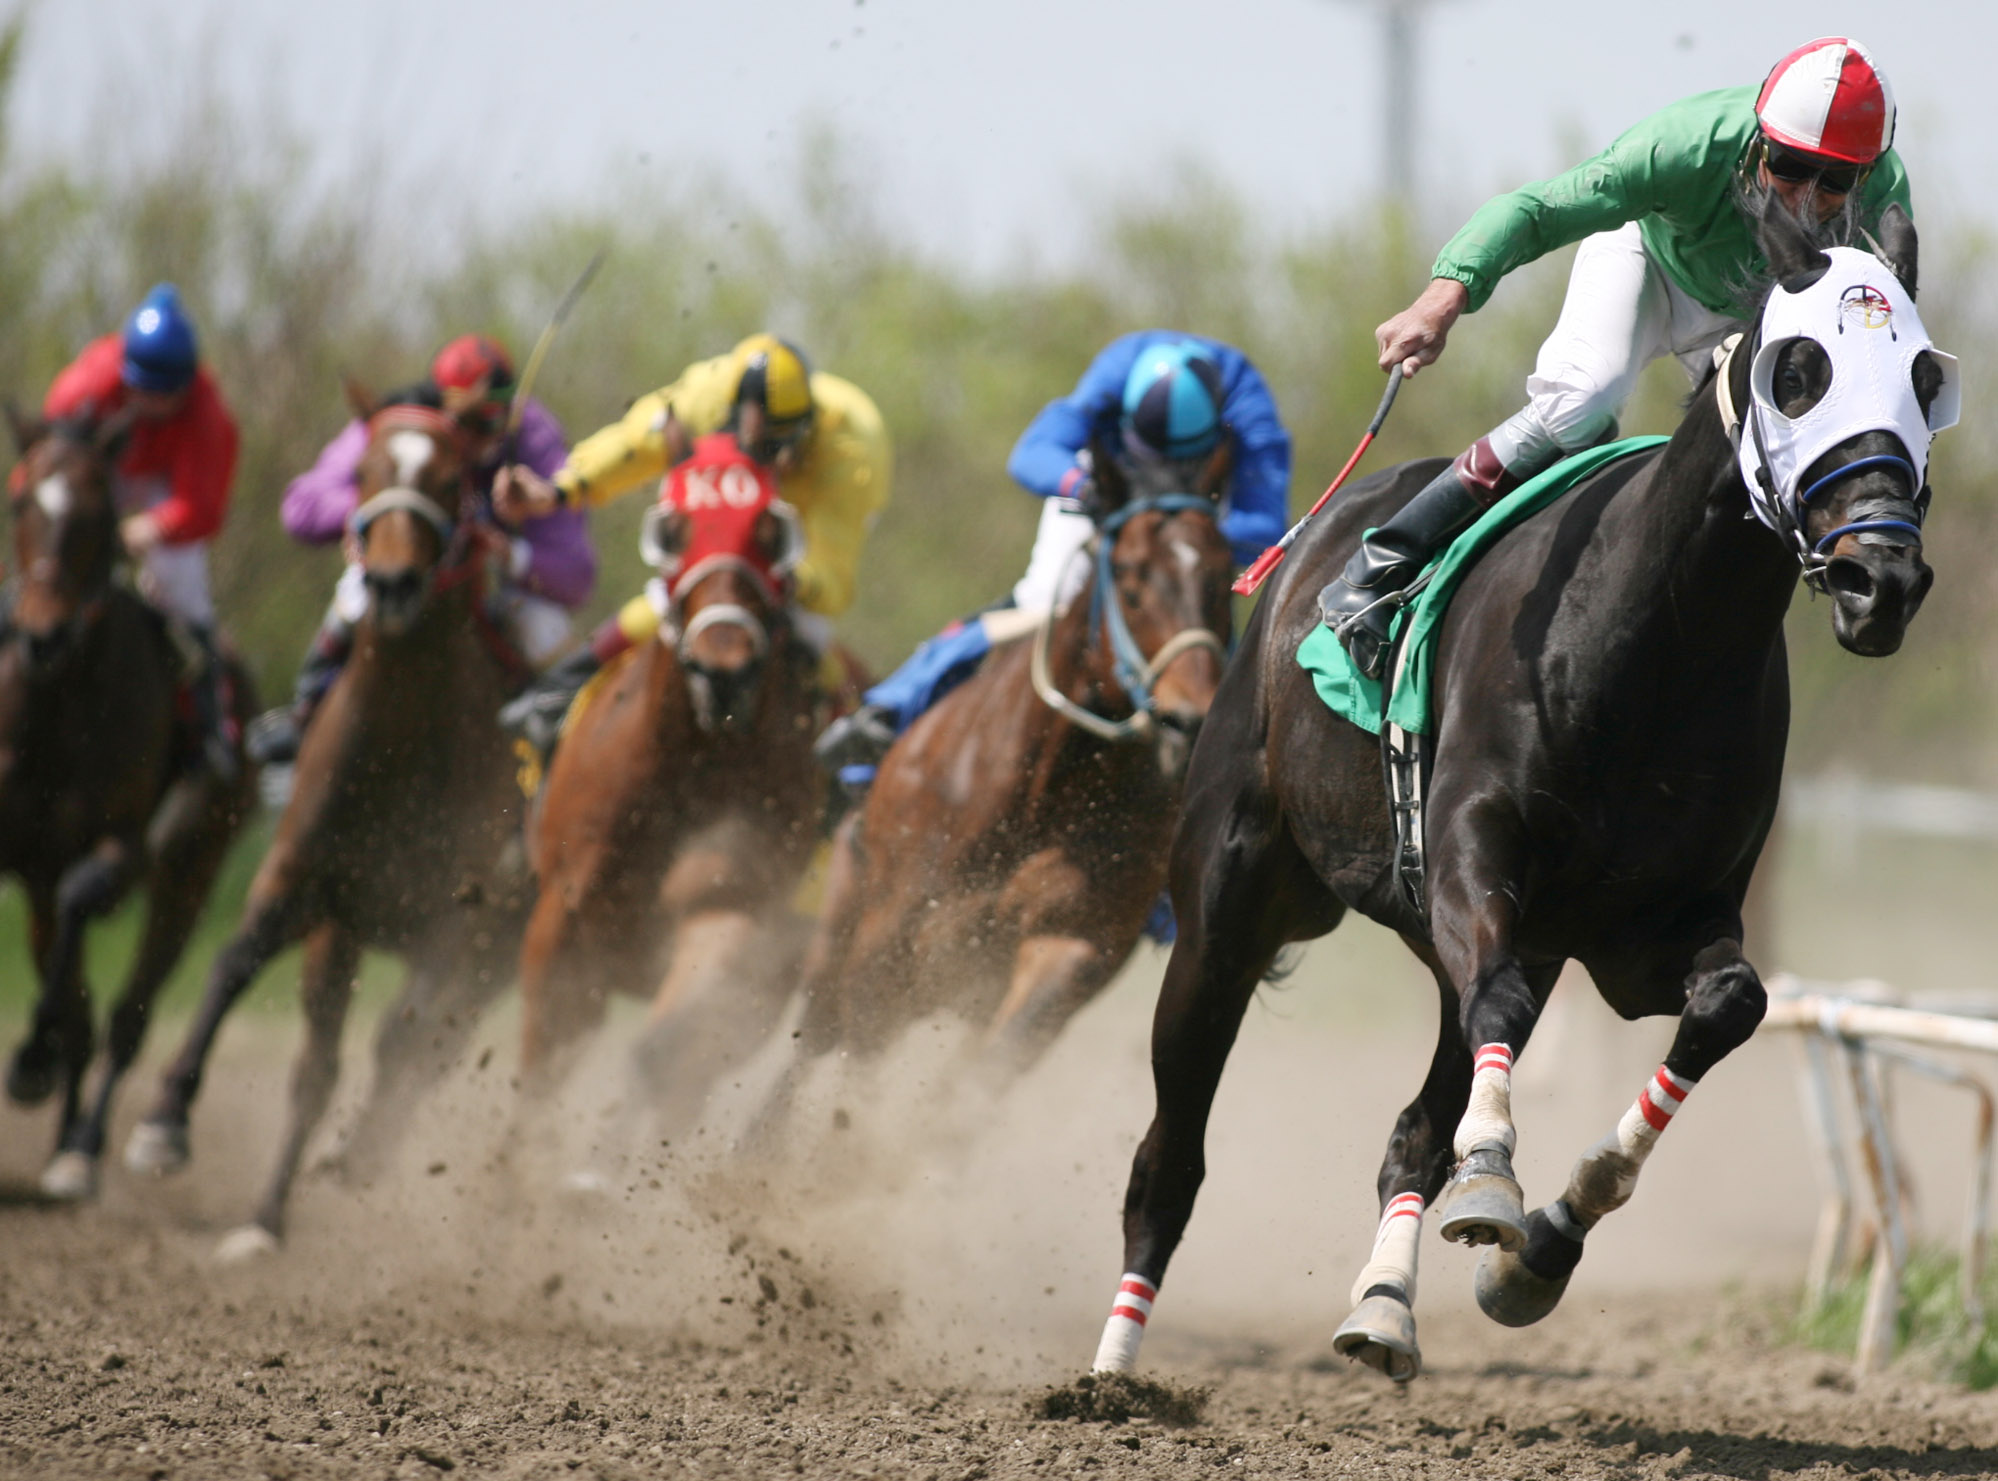 Scams in Horse Racing Partnerships